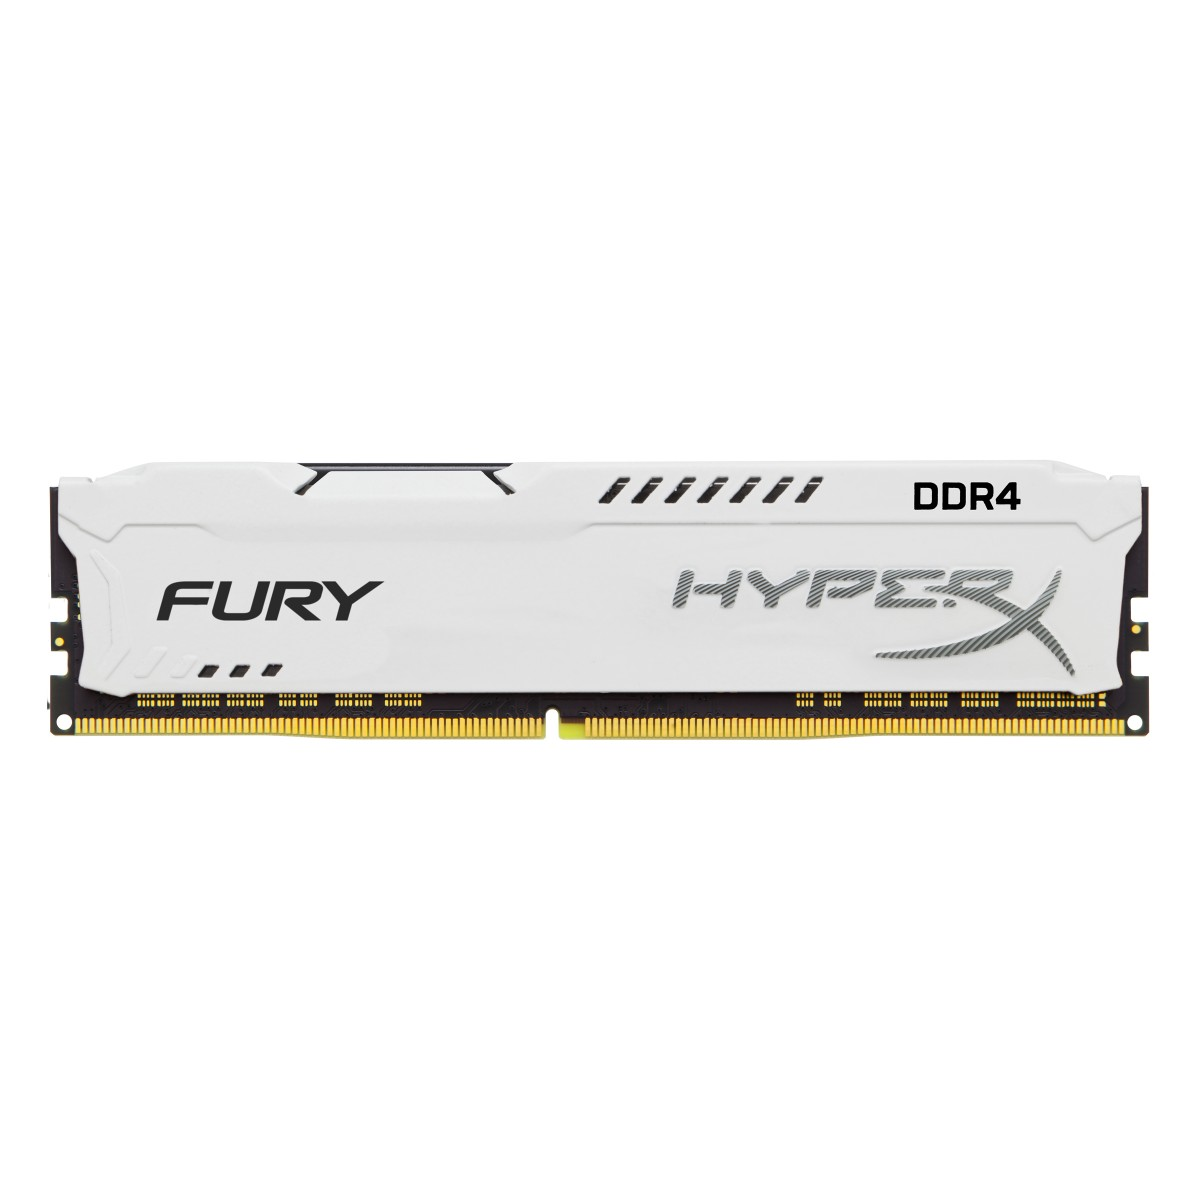 kingston hyperx fury ddr4 8gb hx429c17fw2 8 cena opinie